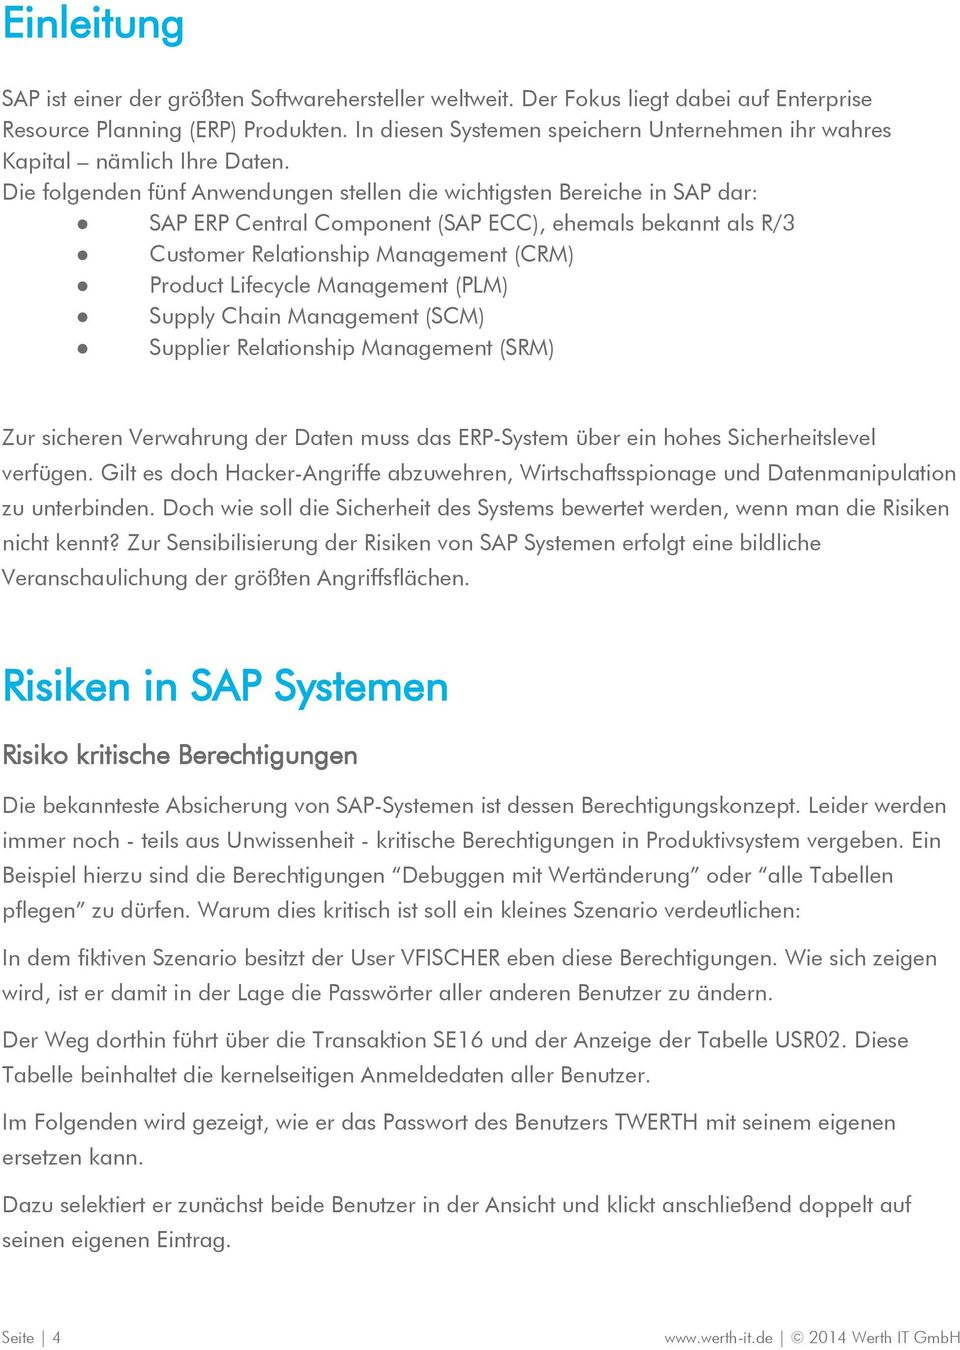 Die folgenden fünf Anwendungen stellen die wichtigsten Bereiche in SAP dar: SAP ERP Central Component (SAP ECC), ehemals bekannt als R/3 Customer Relationship Management (CRM) Product Lifecycle